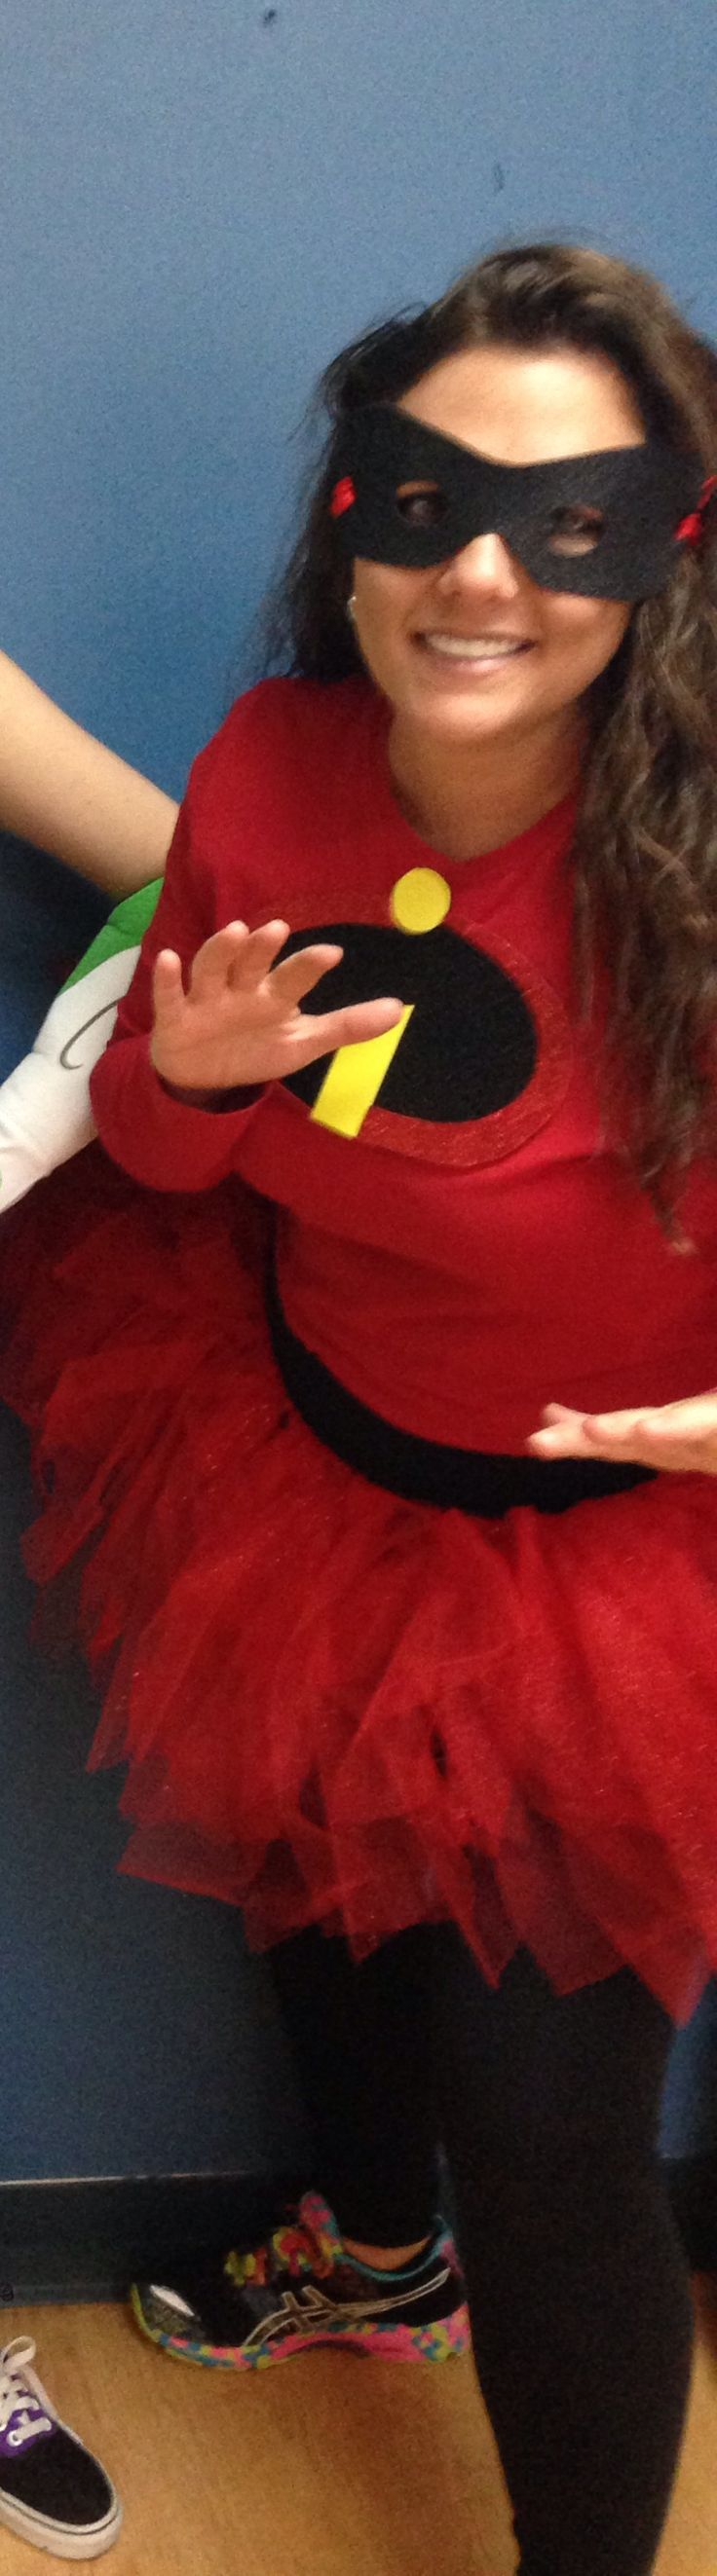 ElastaGirl aka Mrs. Incredible - cheap costume. $3 for the tutu and $3 for the foam glitter paper for the logo! Workout pants and shirt.